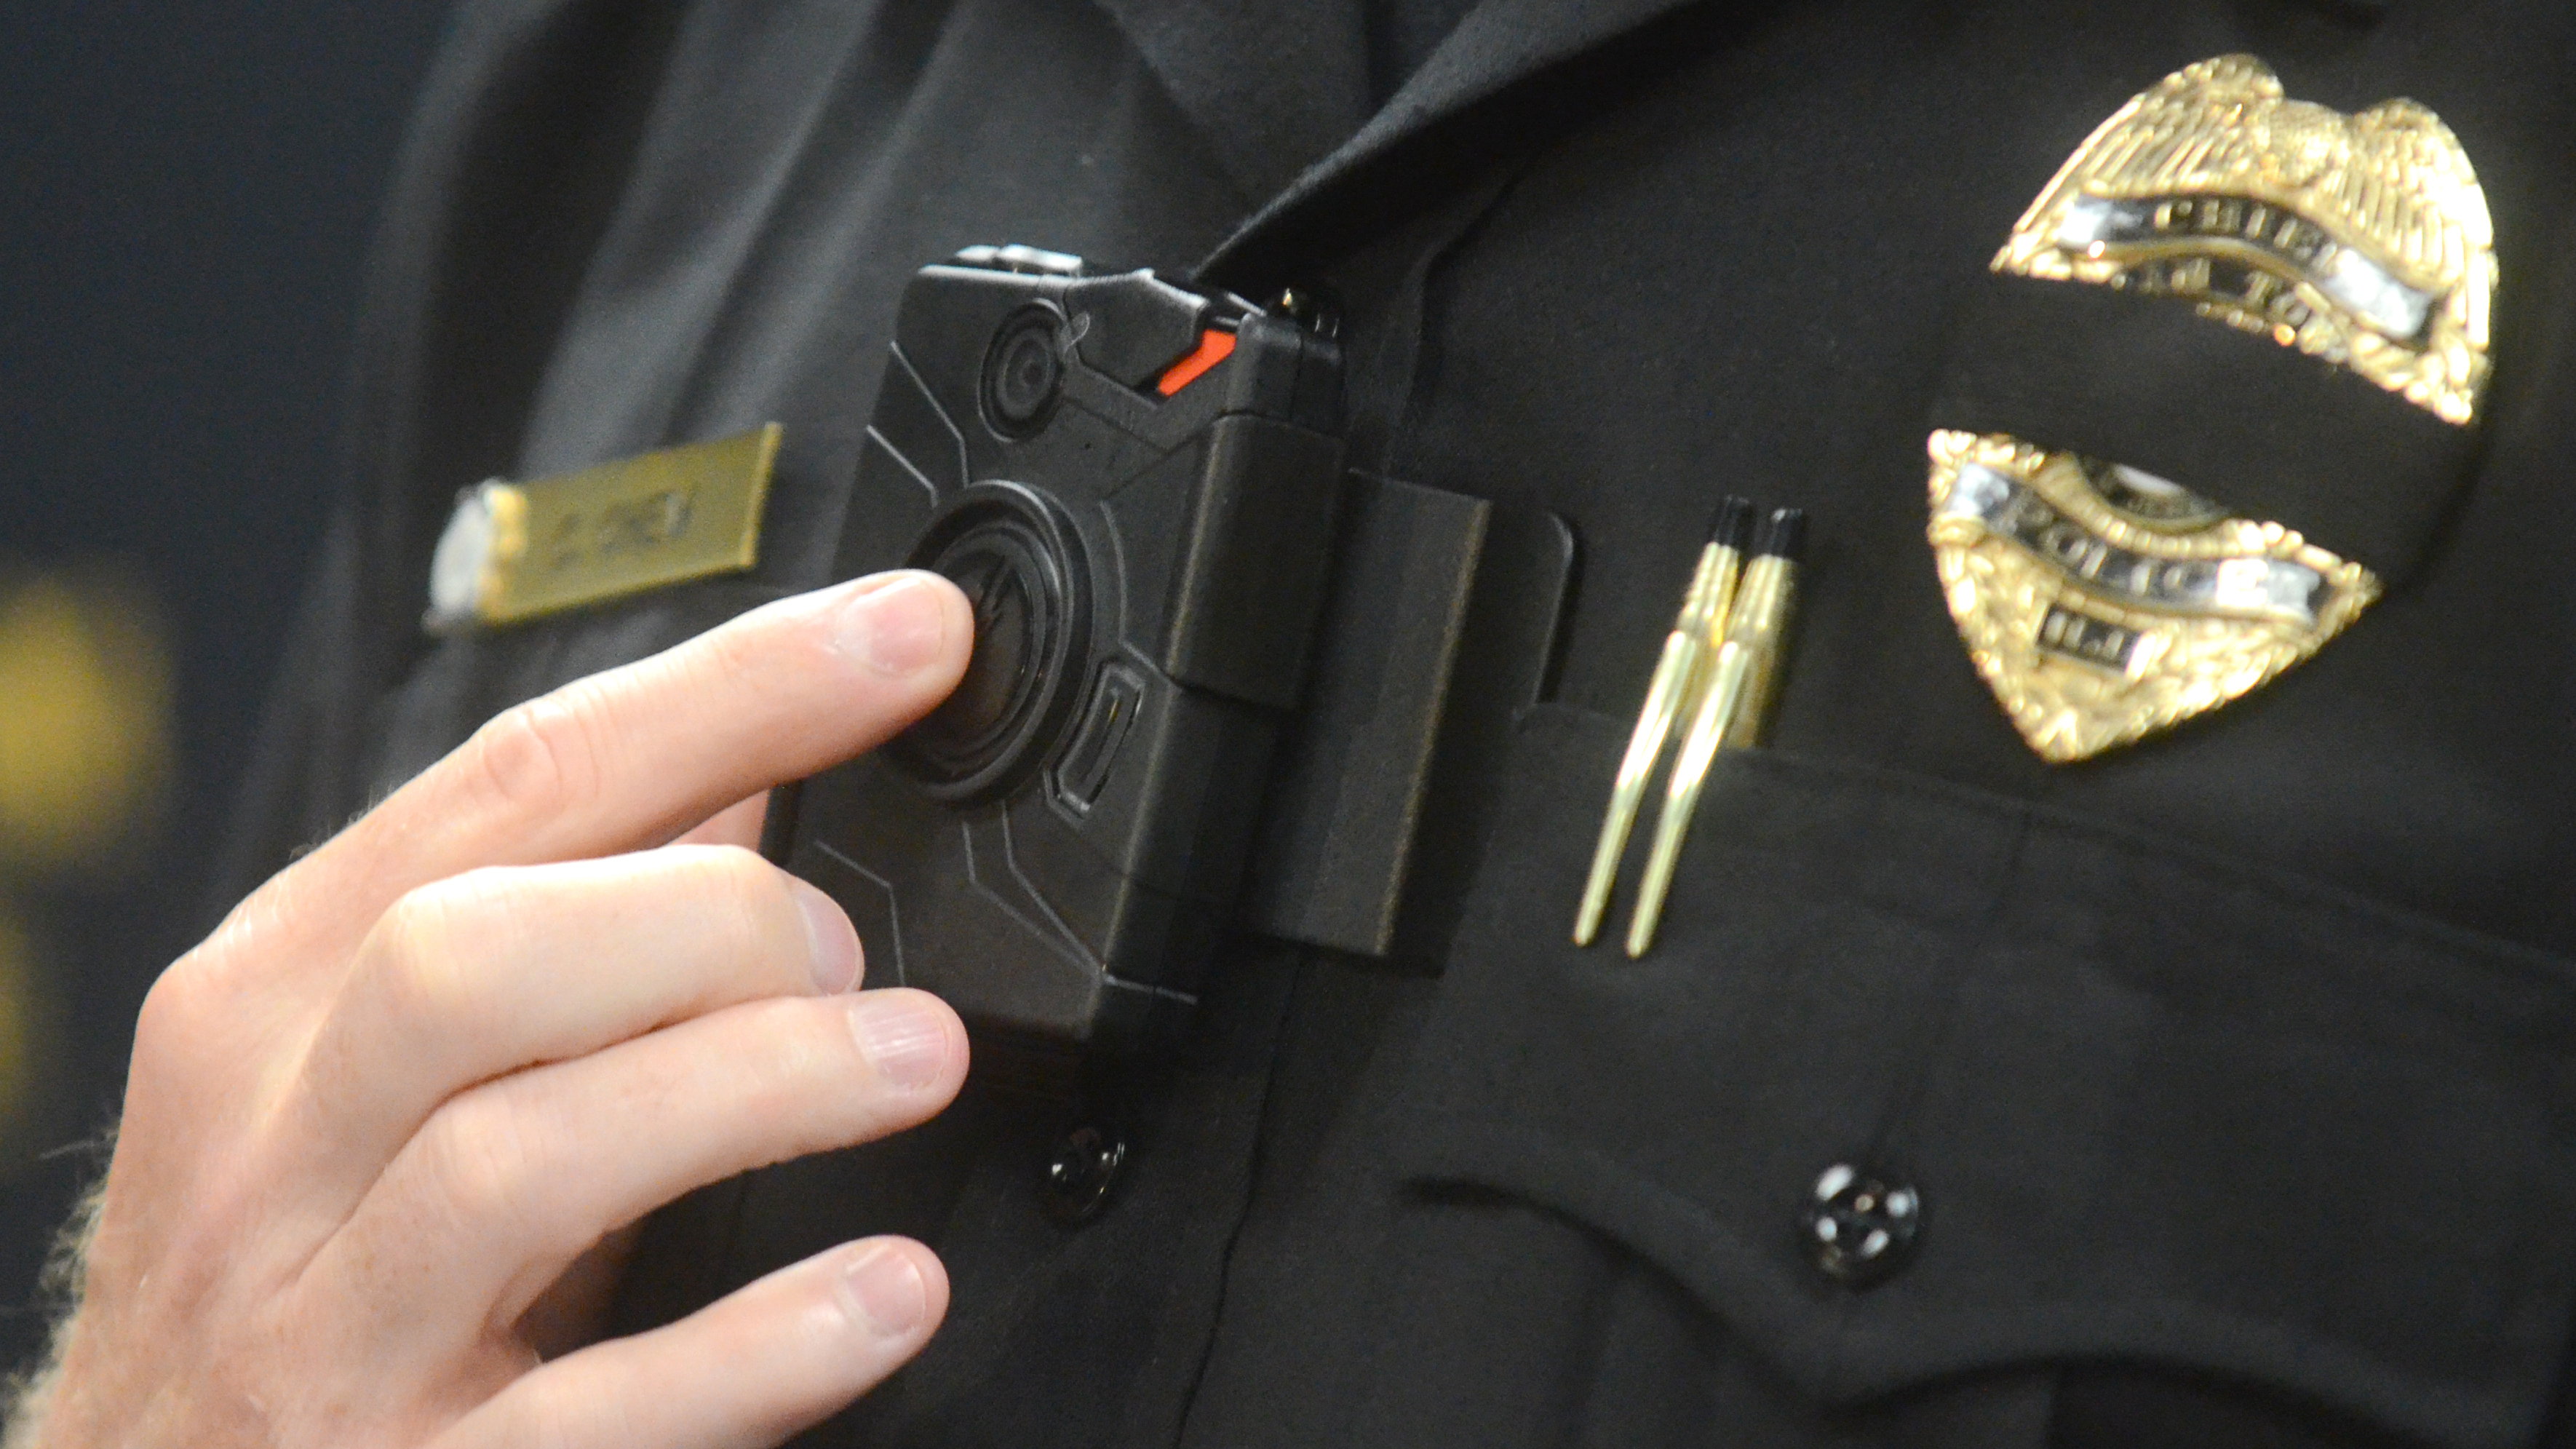 new technology police body worn cameras essay Police body cameras: 5 facts about the technology asu professor predicts video cameras on police uniforms, glasses or hats will become norm.